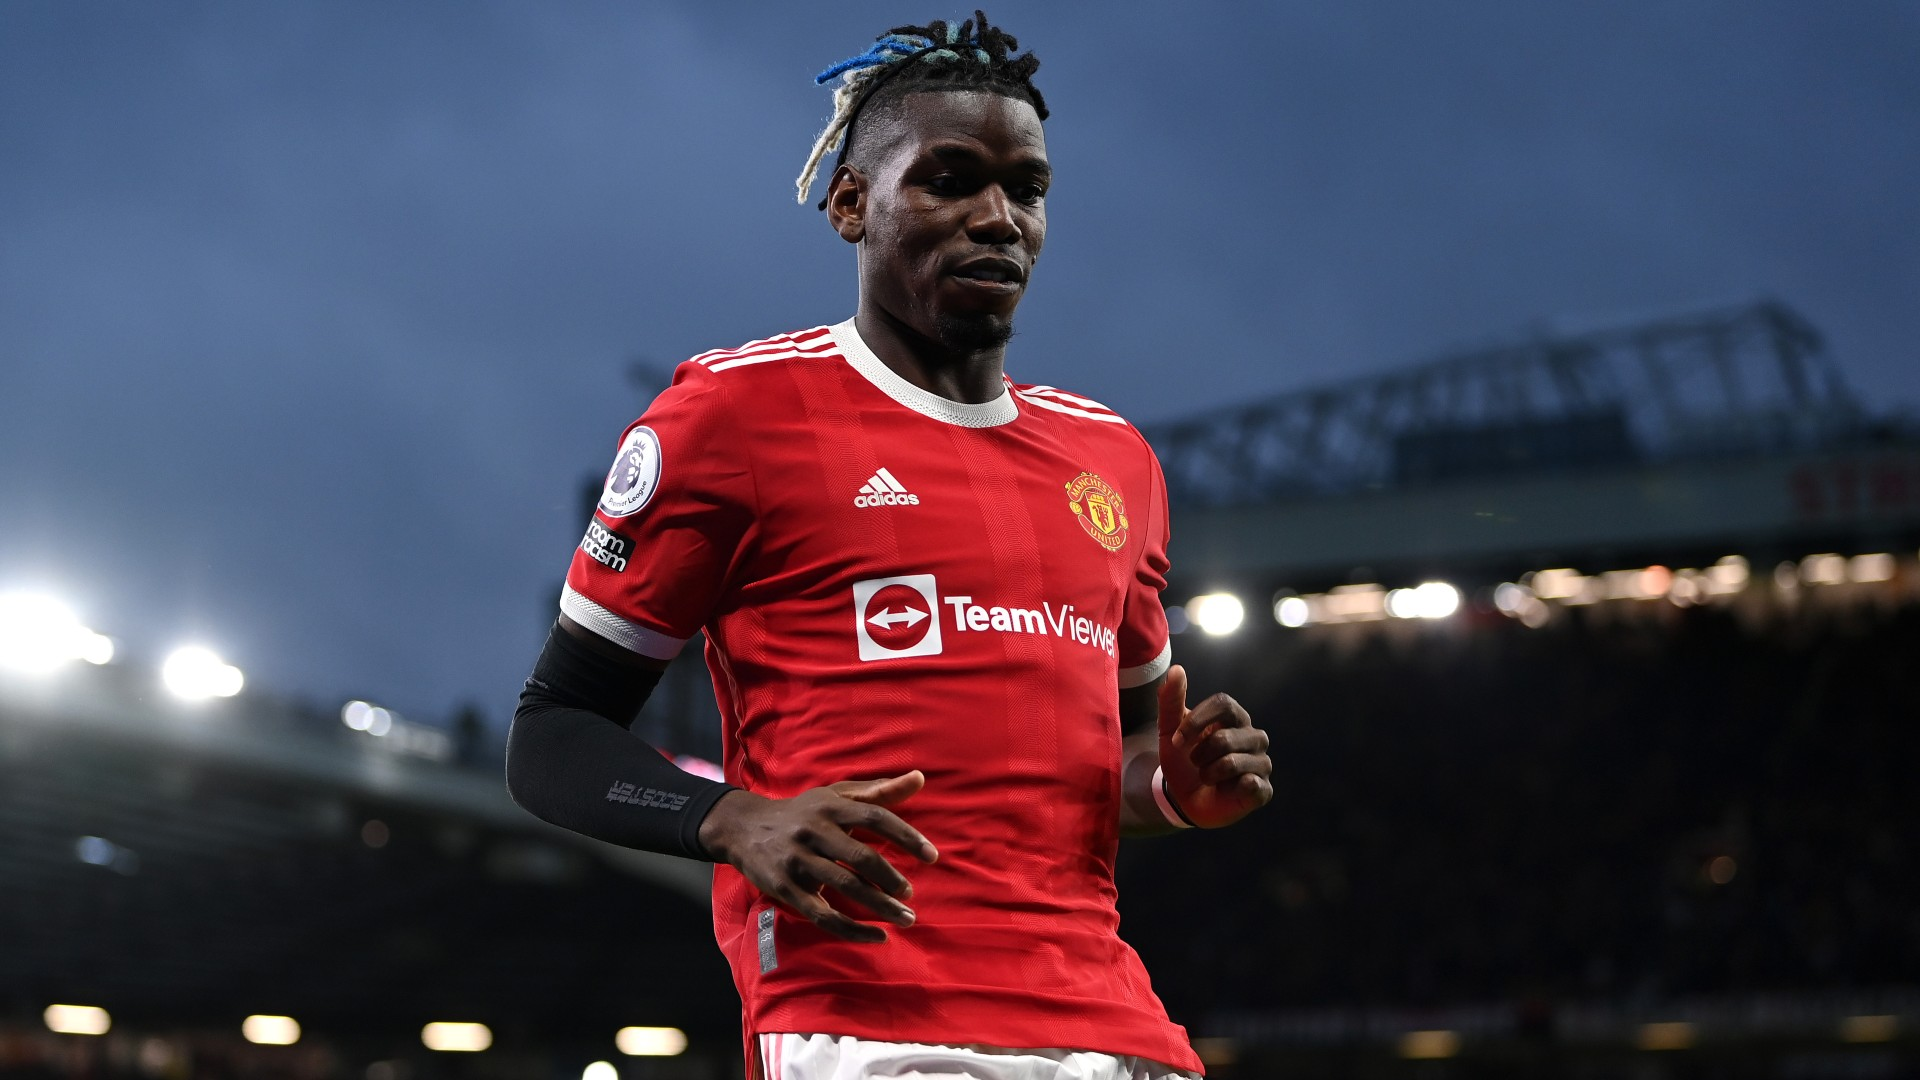 'Man Utd won't miss anything if Pogba doesn't play again' - Scholes slams 'disrespectful' midfielder after Liverpool horror show